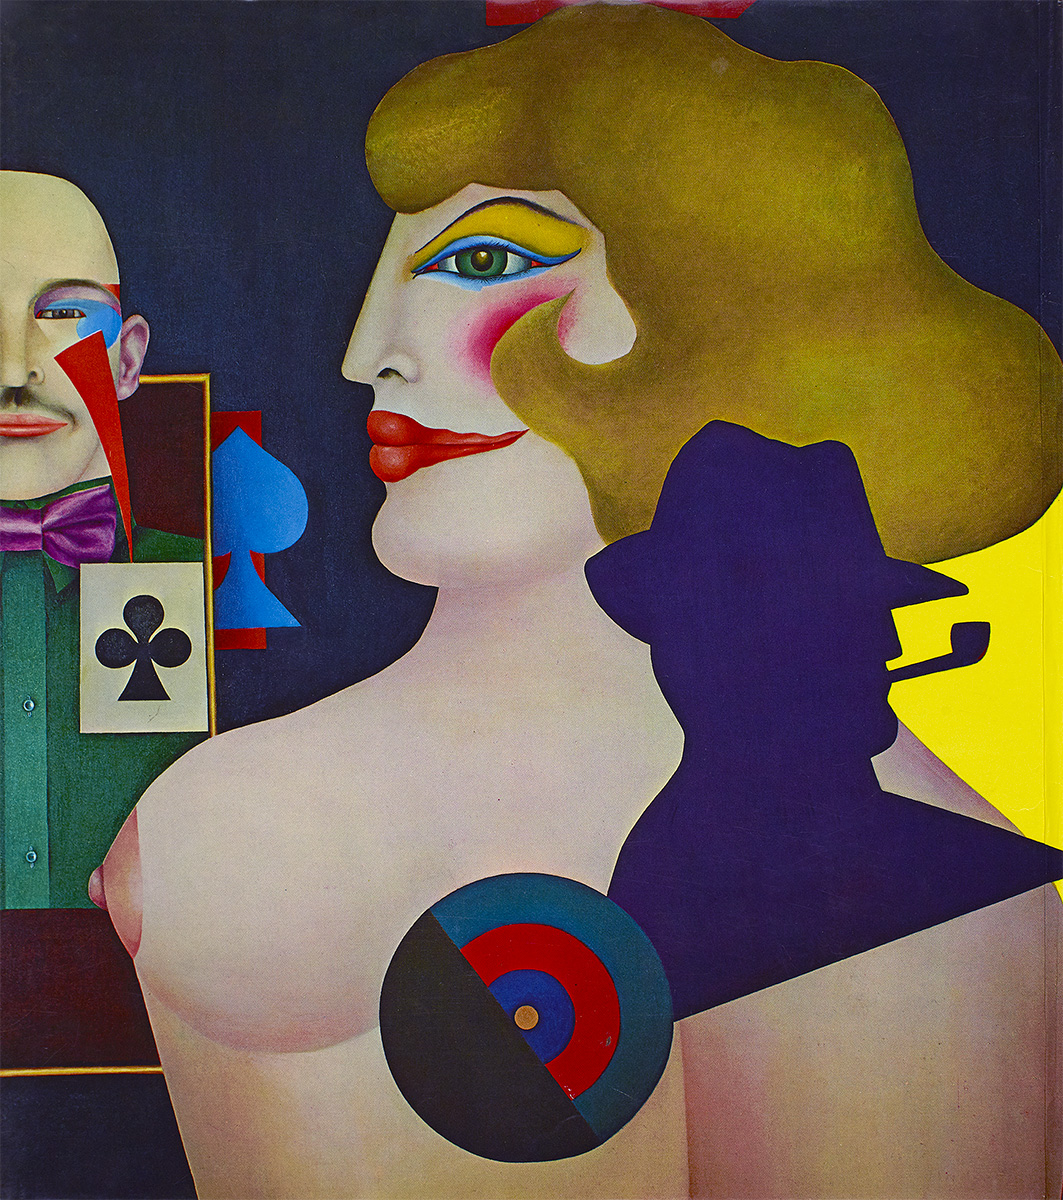 Hilton Kramer richard lindner